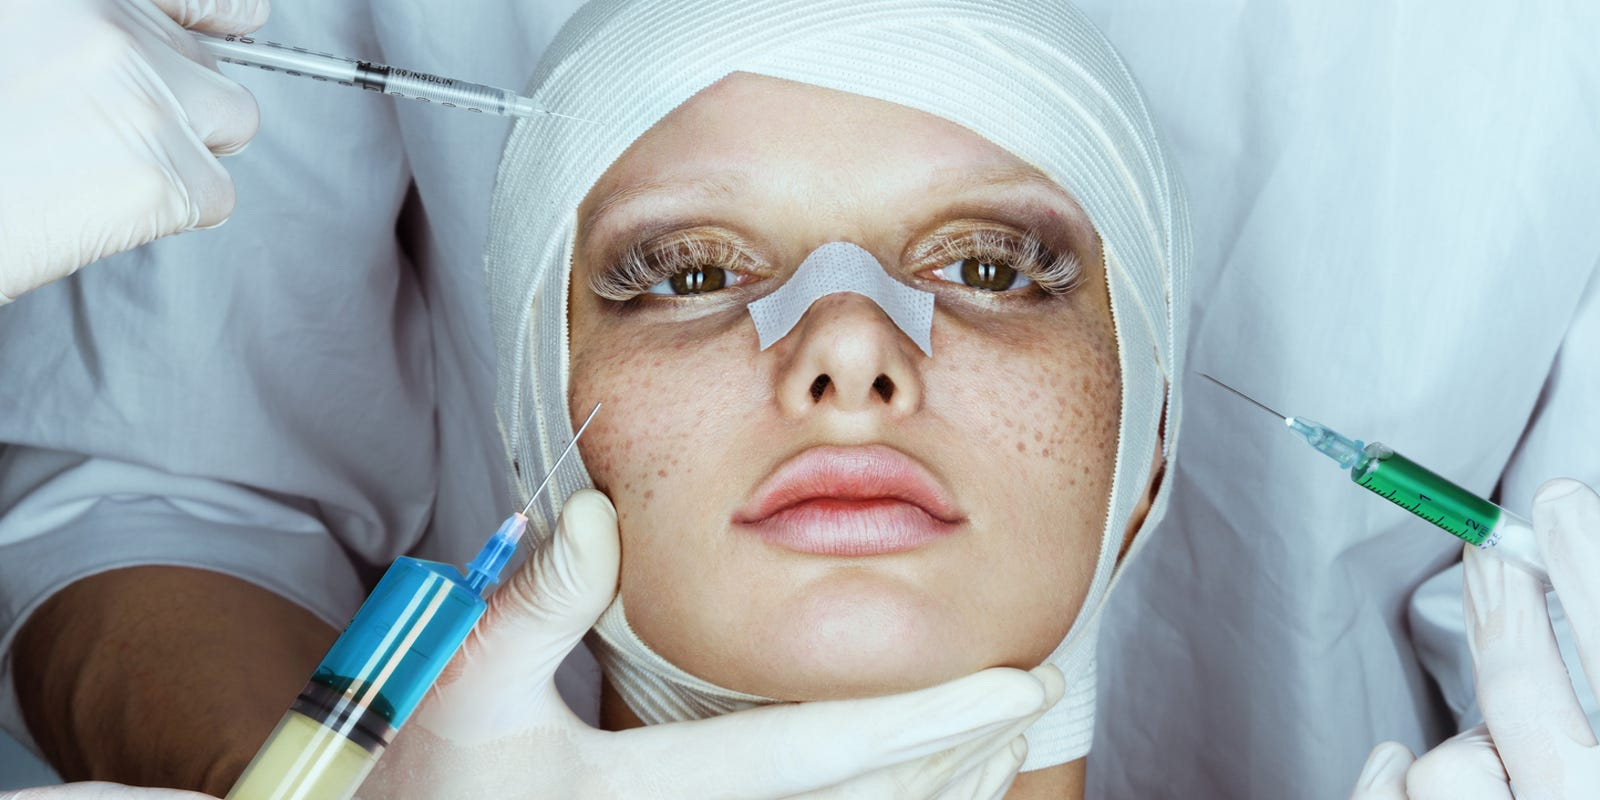 Americans are spending more than ever on plastic surgery